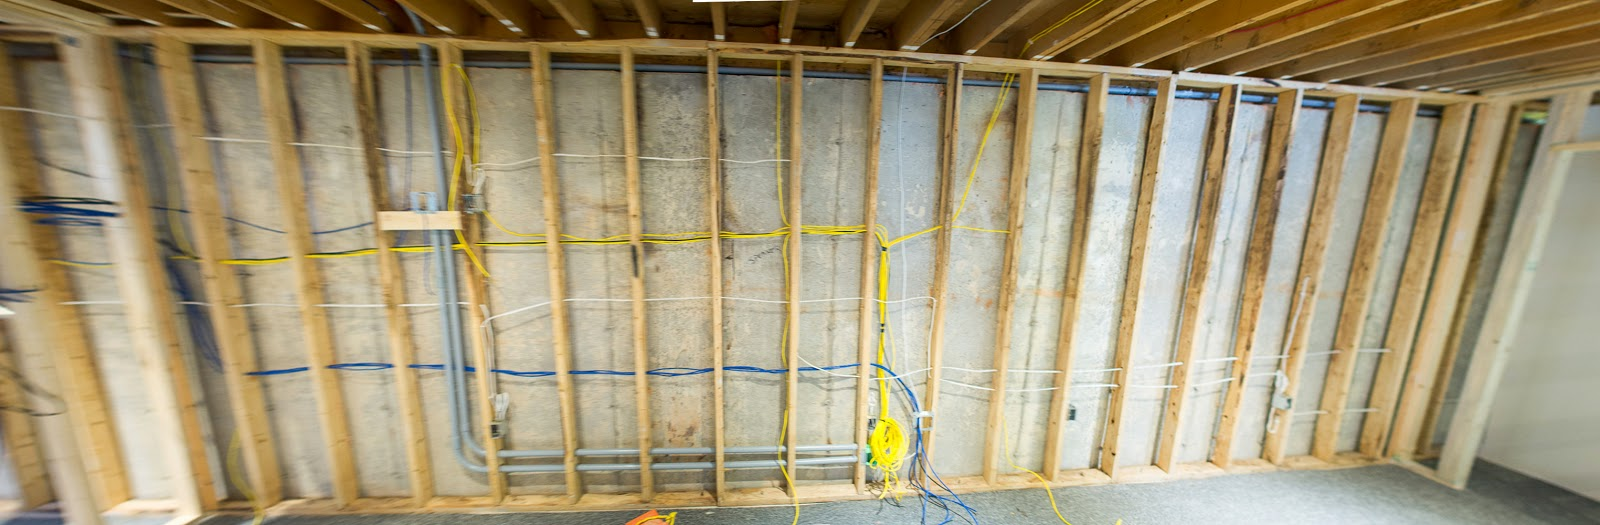 Jcb Sons Blog Licensed Carpenters And Builders Hanover Home Entertainment Wiring Here Is A Panorama Of The Finished Theater Network Cables By Integrated Audio Visual Event Management It Was Great Time To Install All This